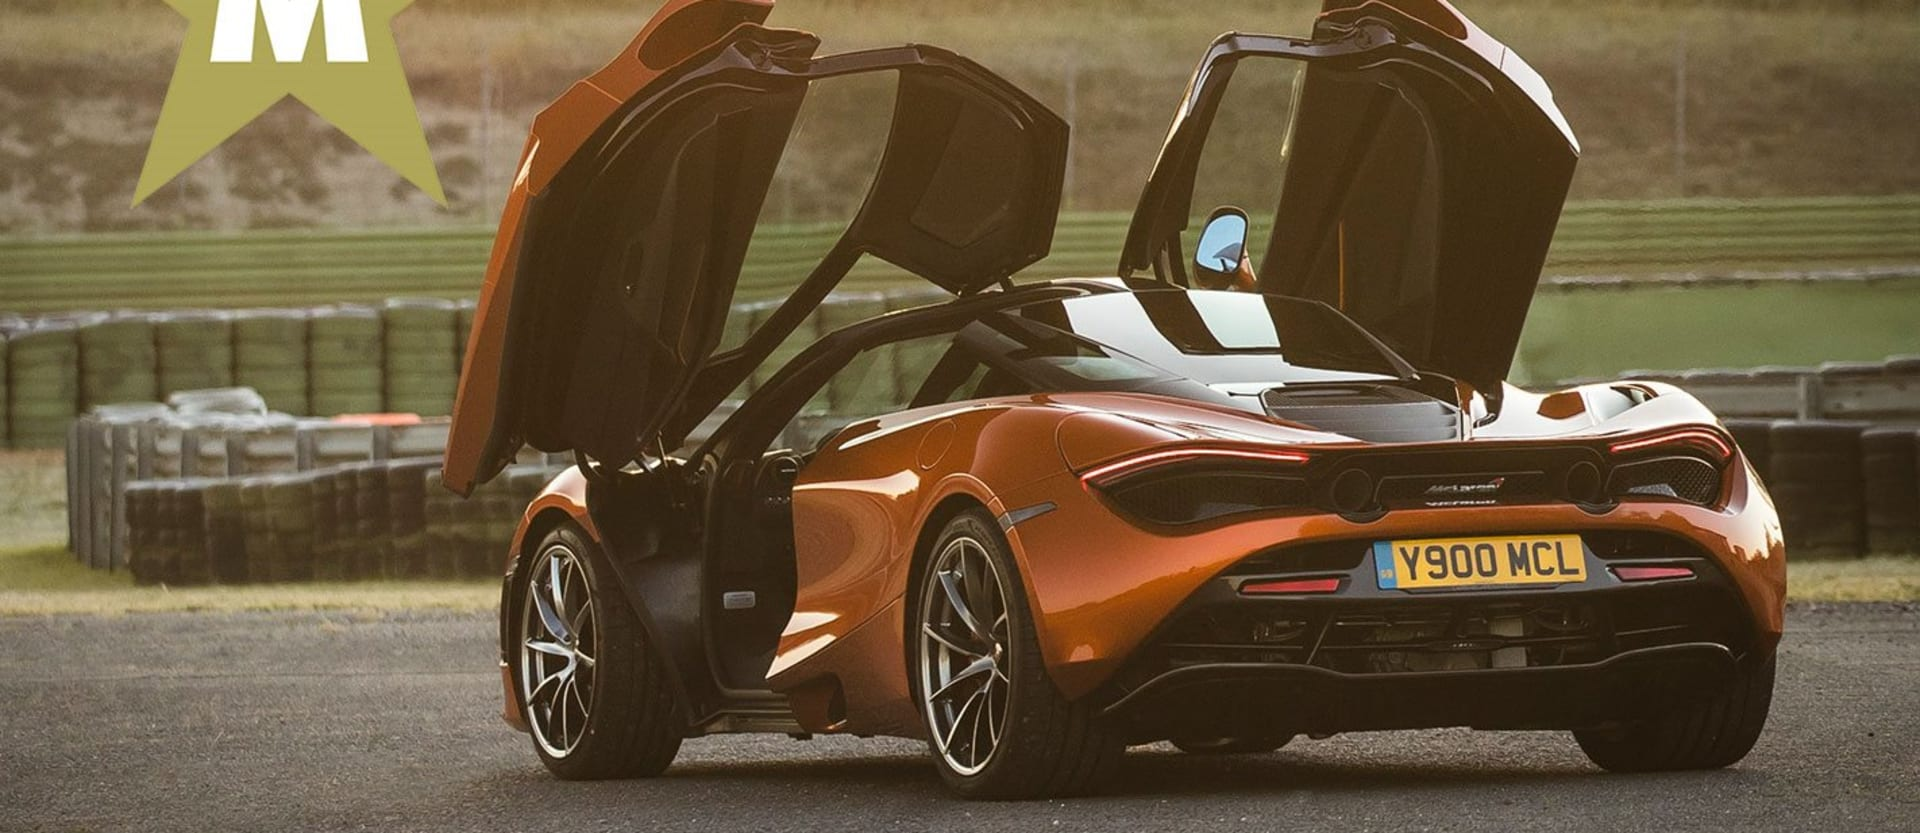 best chassis 720s